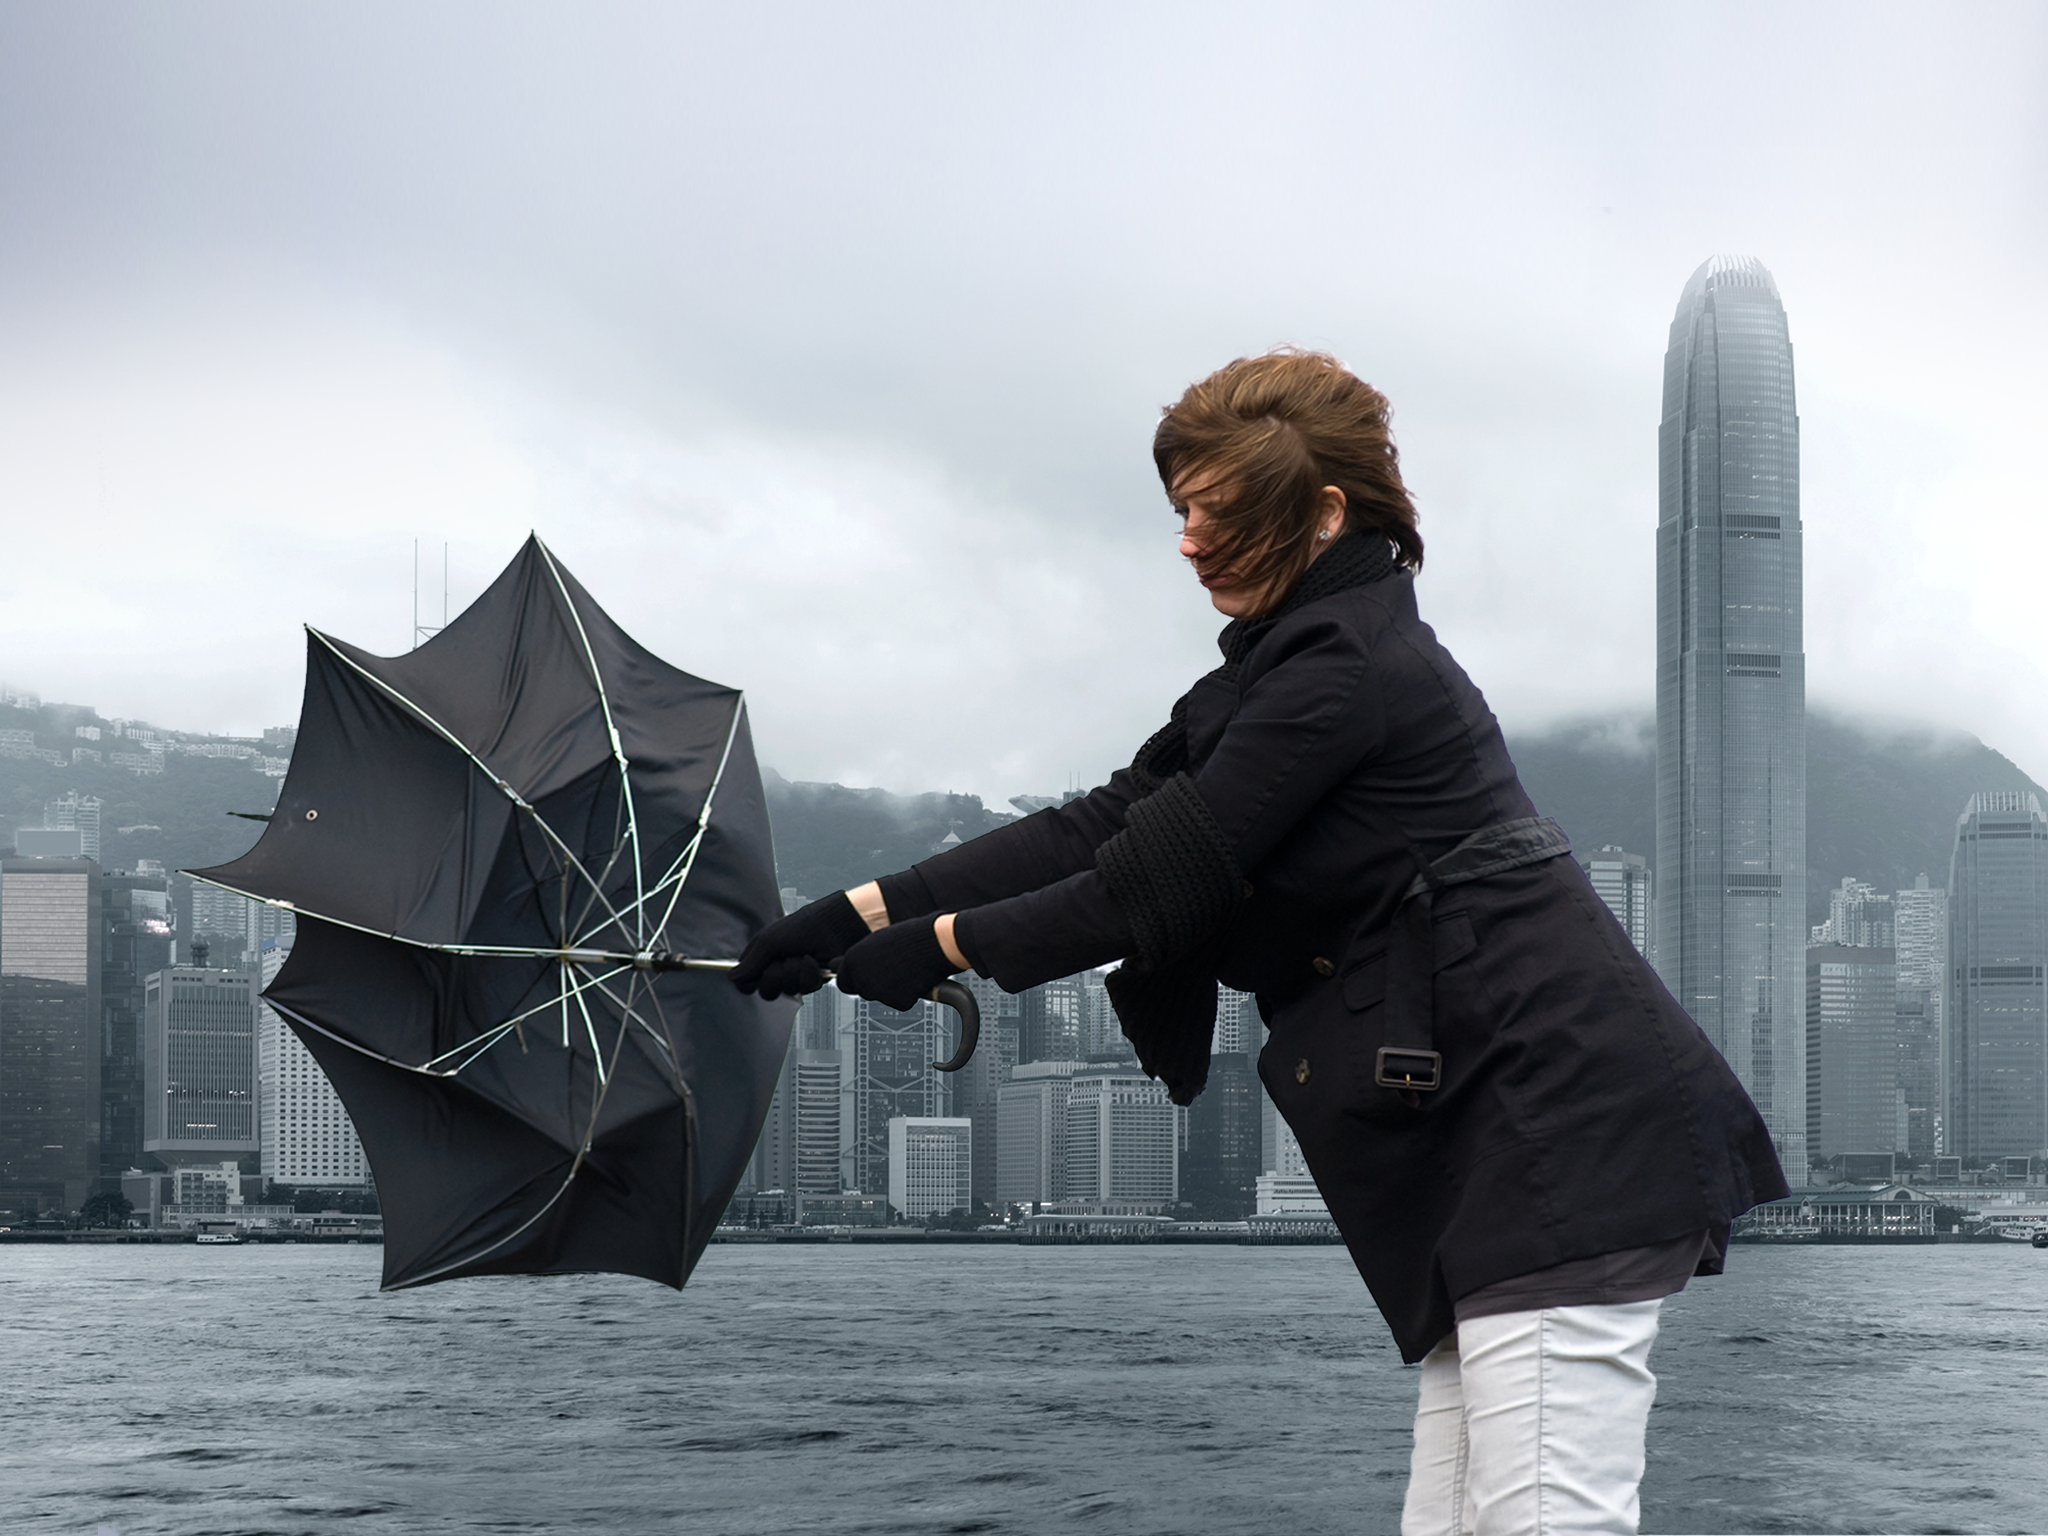 Woman with umbrella in a typhoon